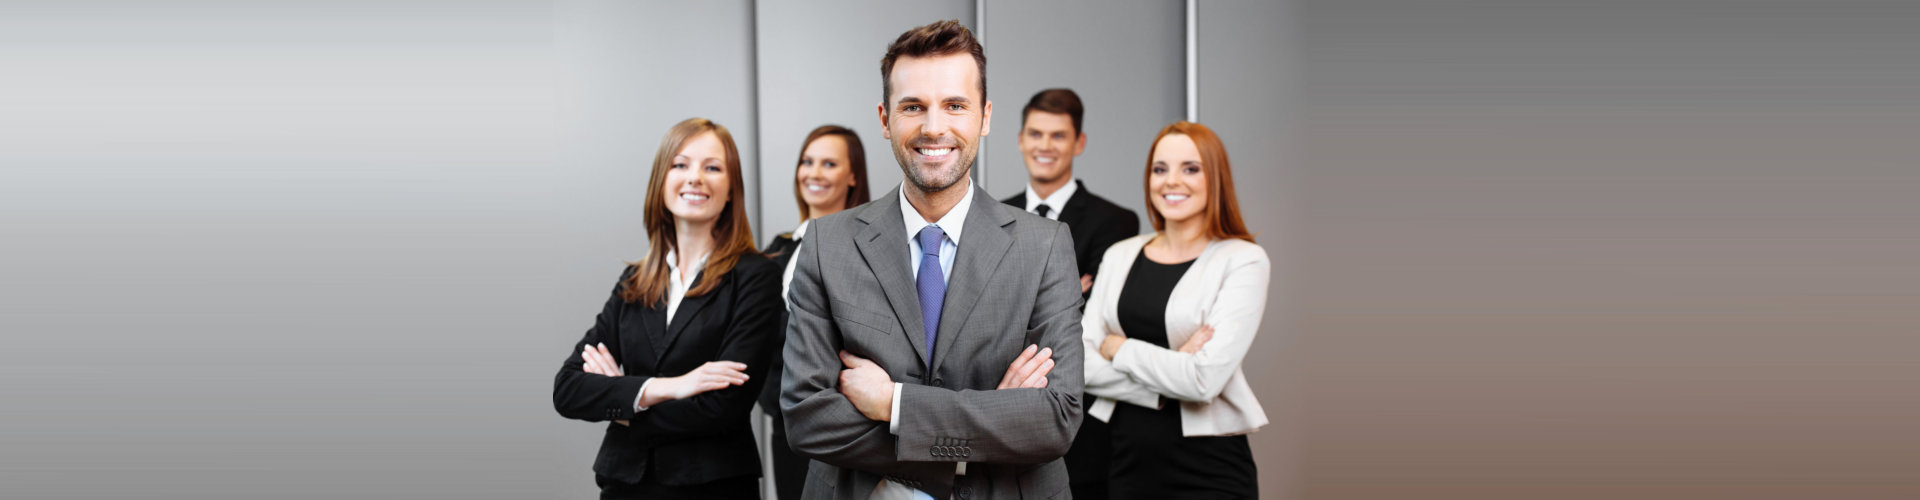 a group of consultants smiling